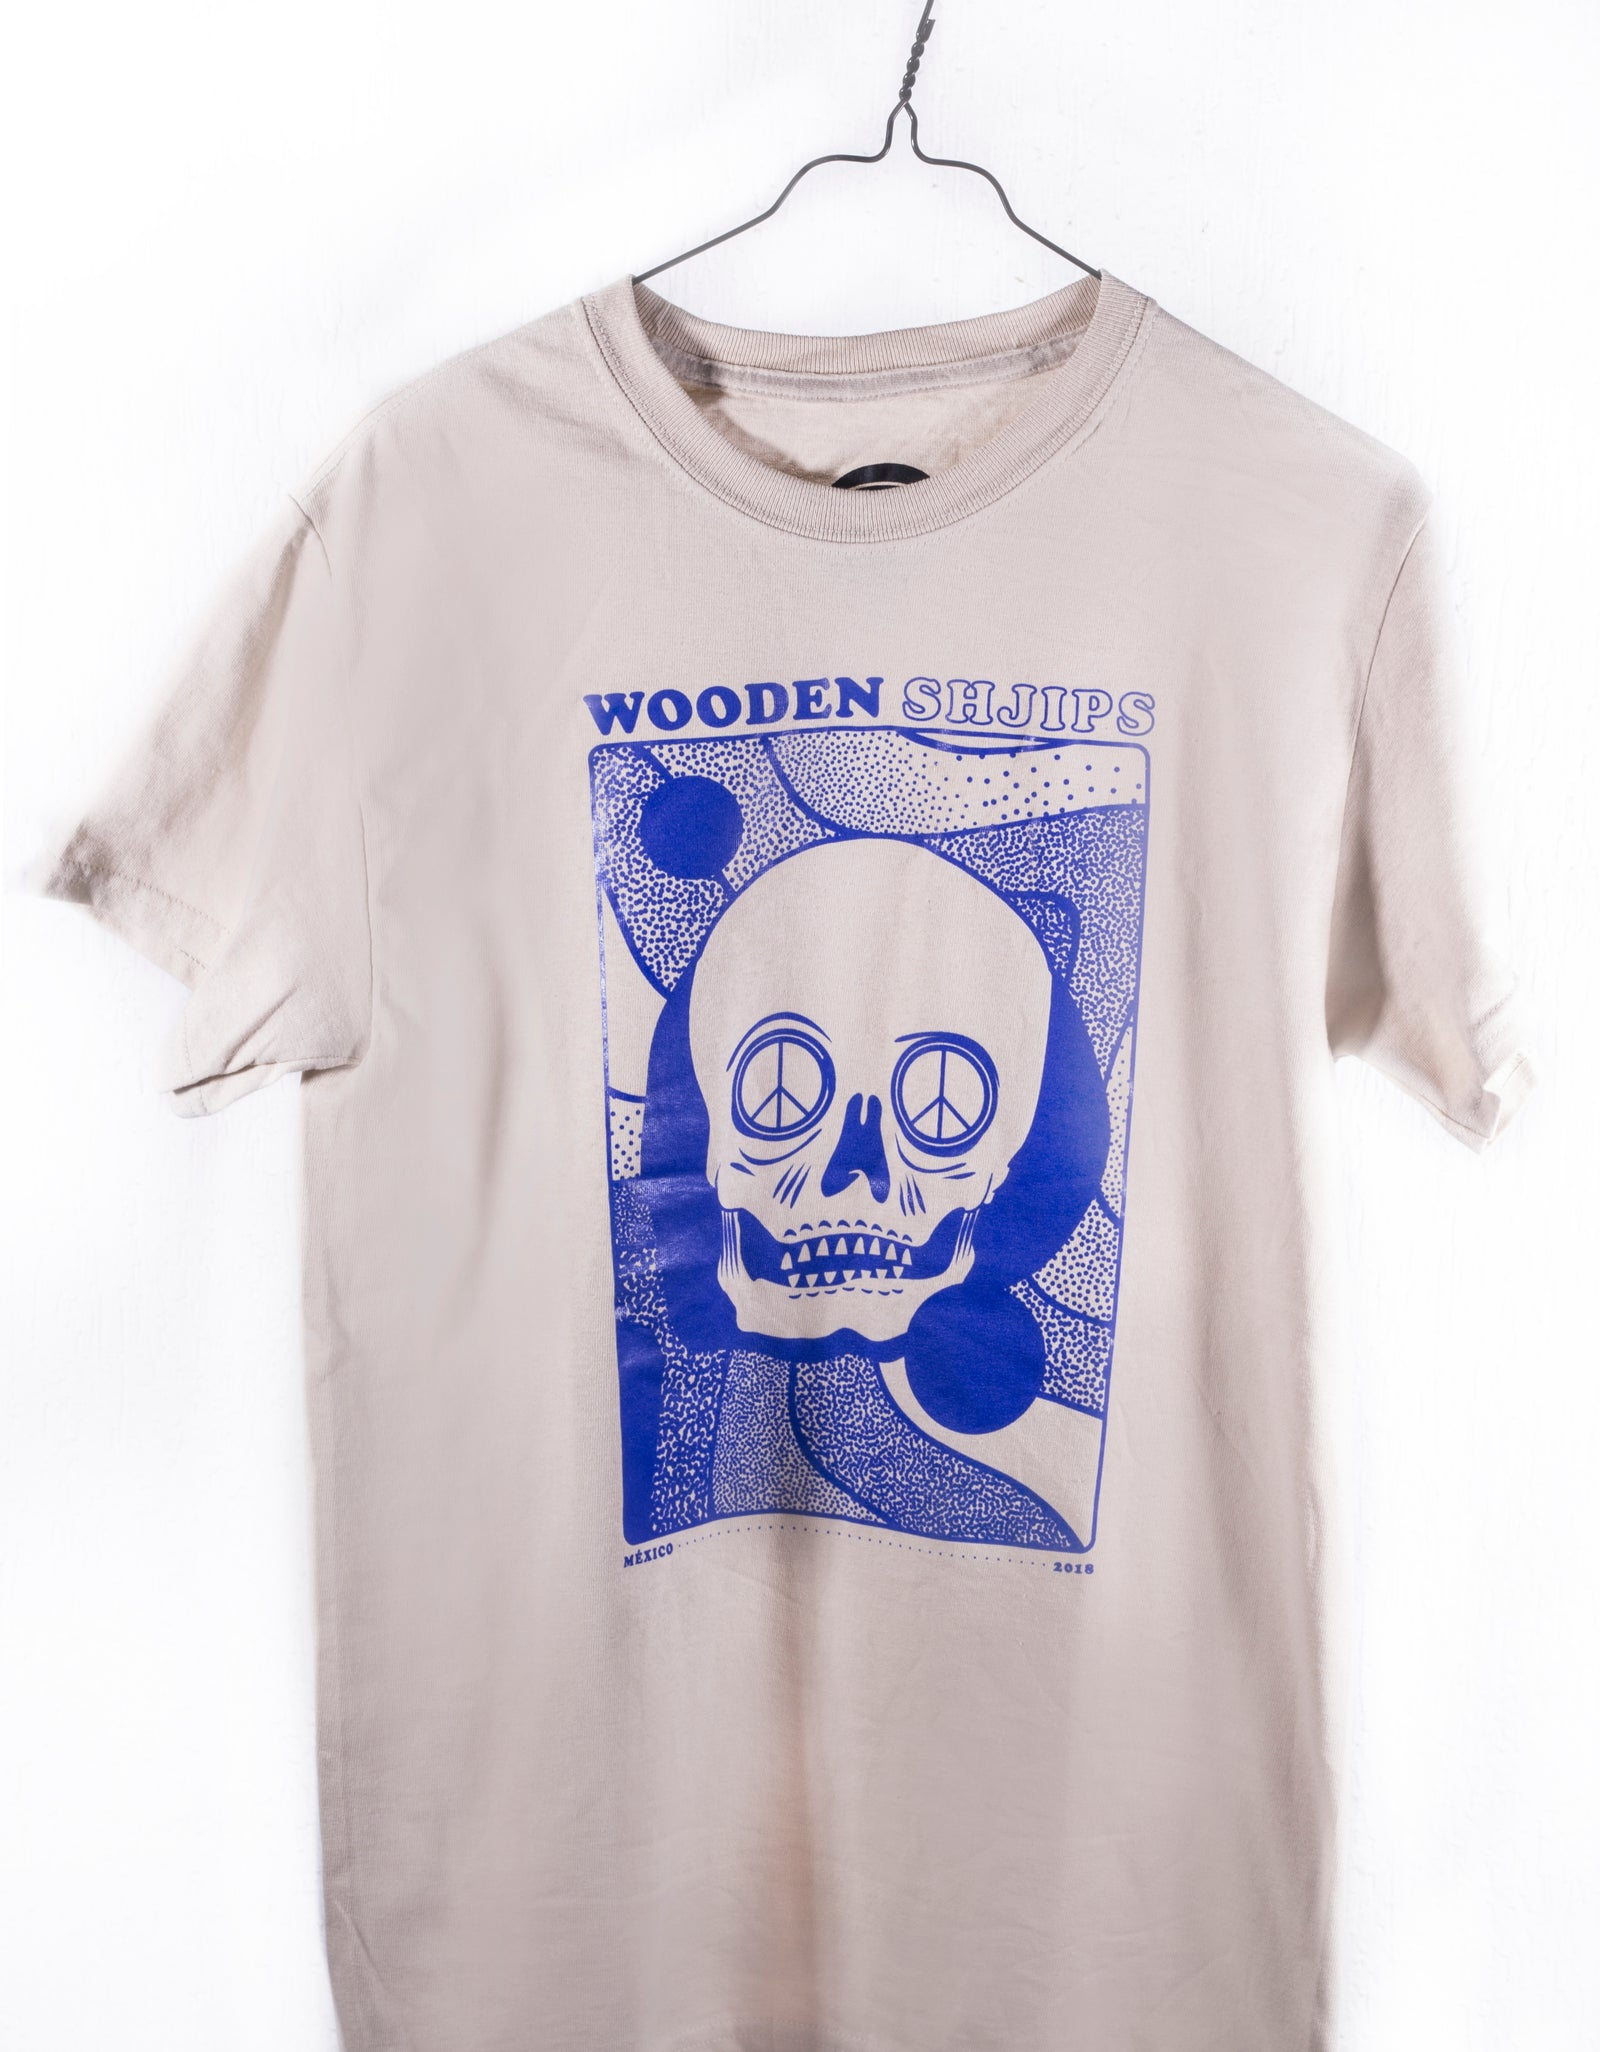 Wooden Shjips playera oficial t-shirt MX18 exclusive - Hipnosis